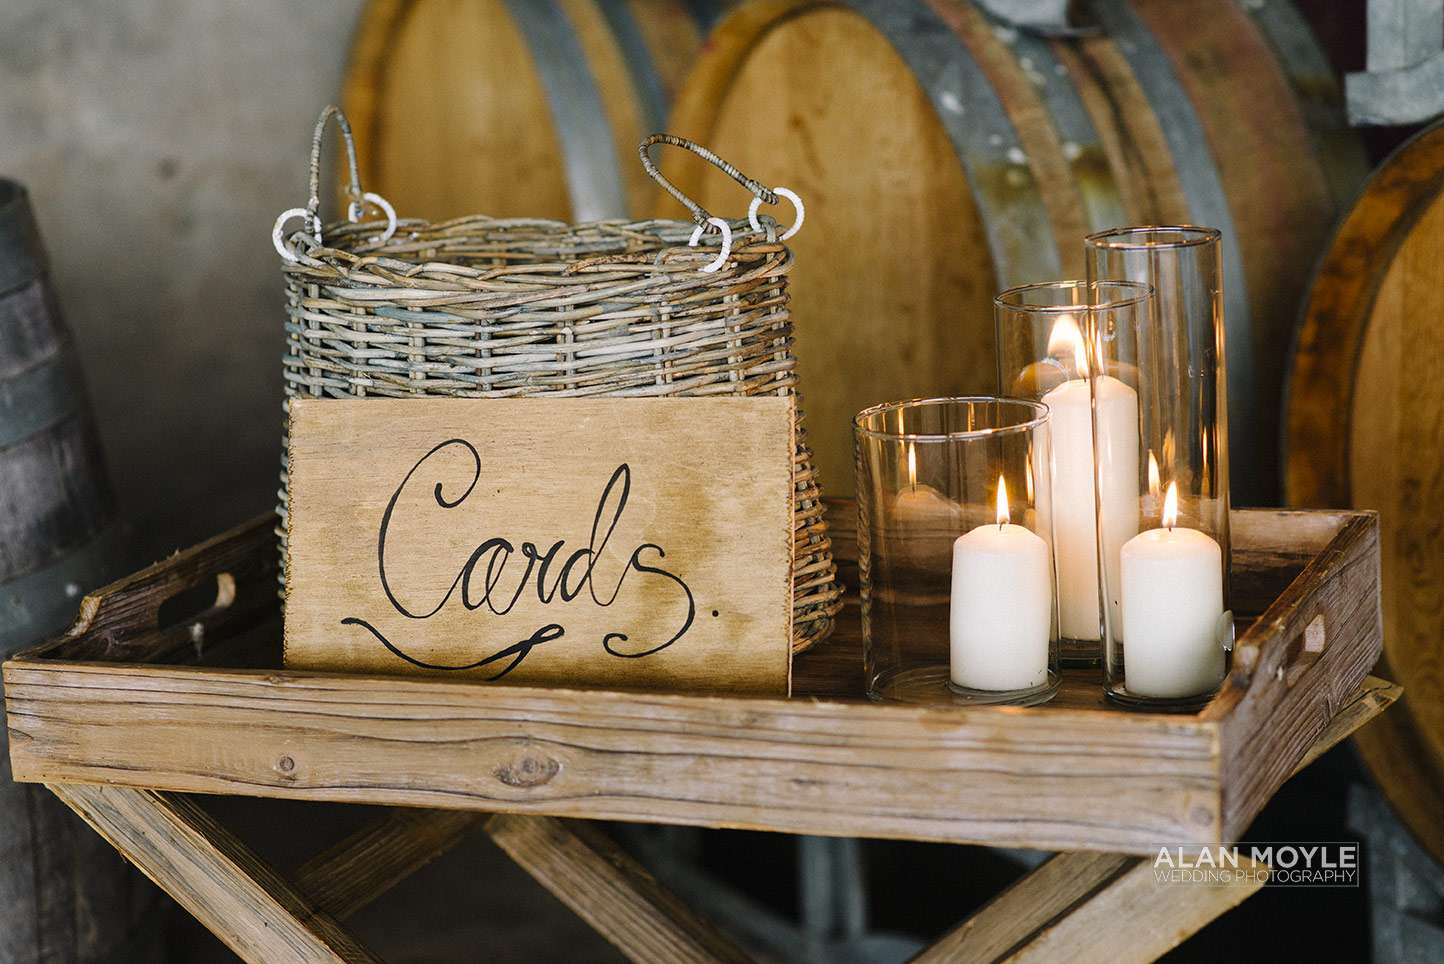 1405austin-280weddings_of_desire_melbourne_styling_event_geelong_alan_moyle_vineyard_winery_caligraphy_laura_sprout_hire_bayside.jpg